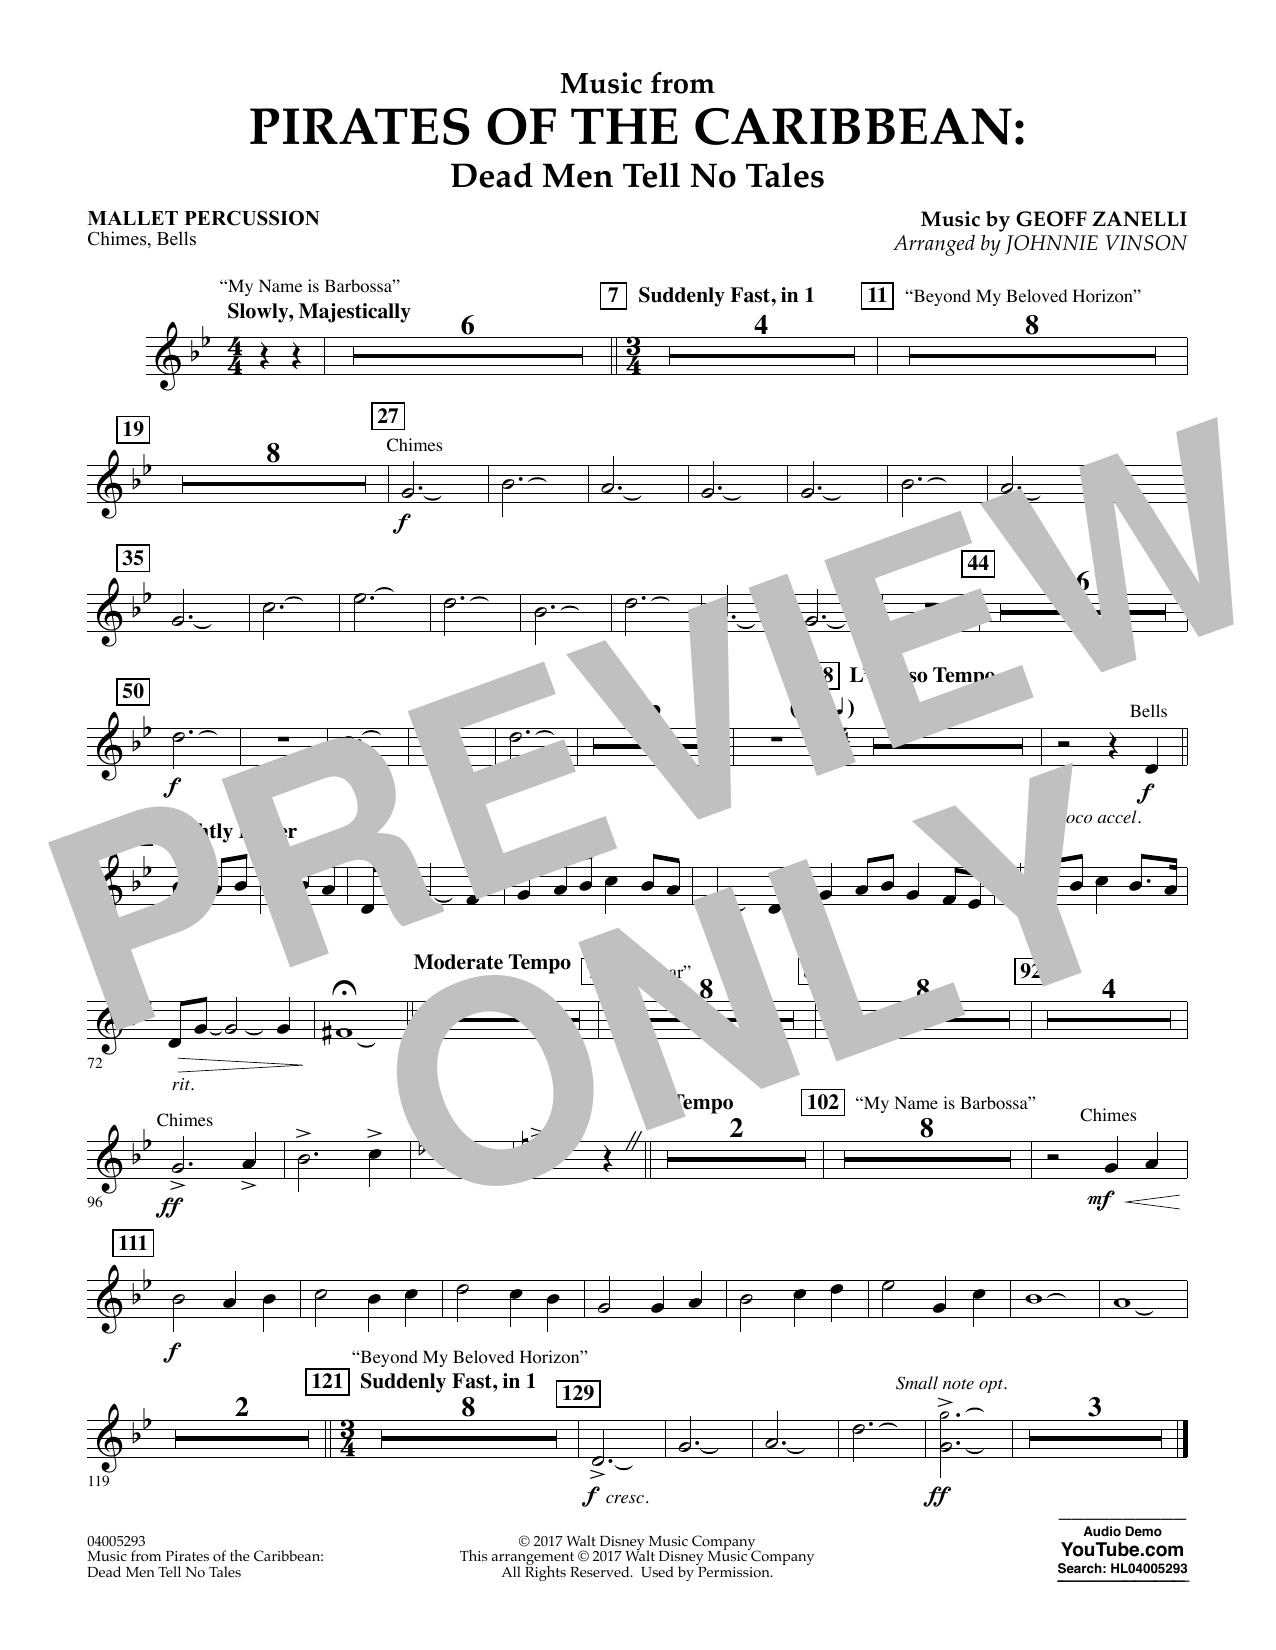 Johnnie Vinson Music from Pirates of the Caribbean: Dead Men Tell No Tales - Mallet Percussion sheet music notes and chords. Download Printable PDF.